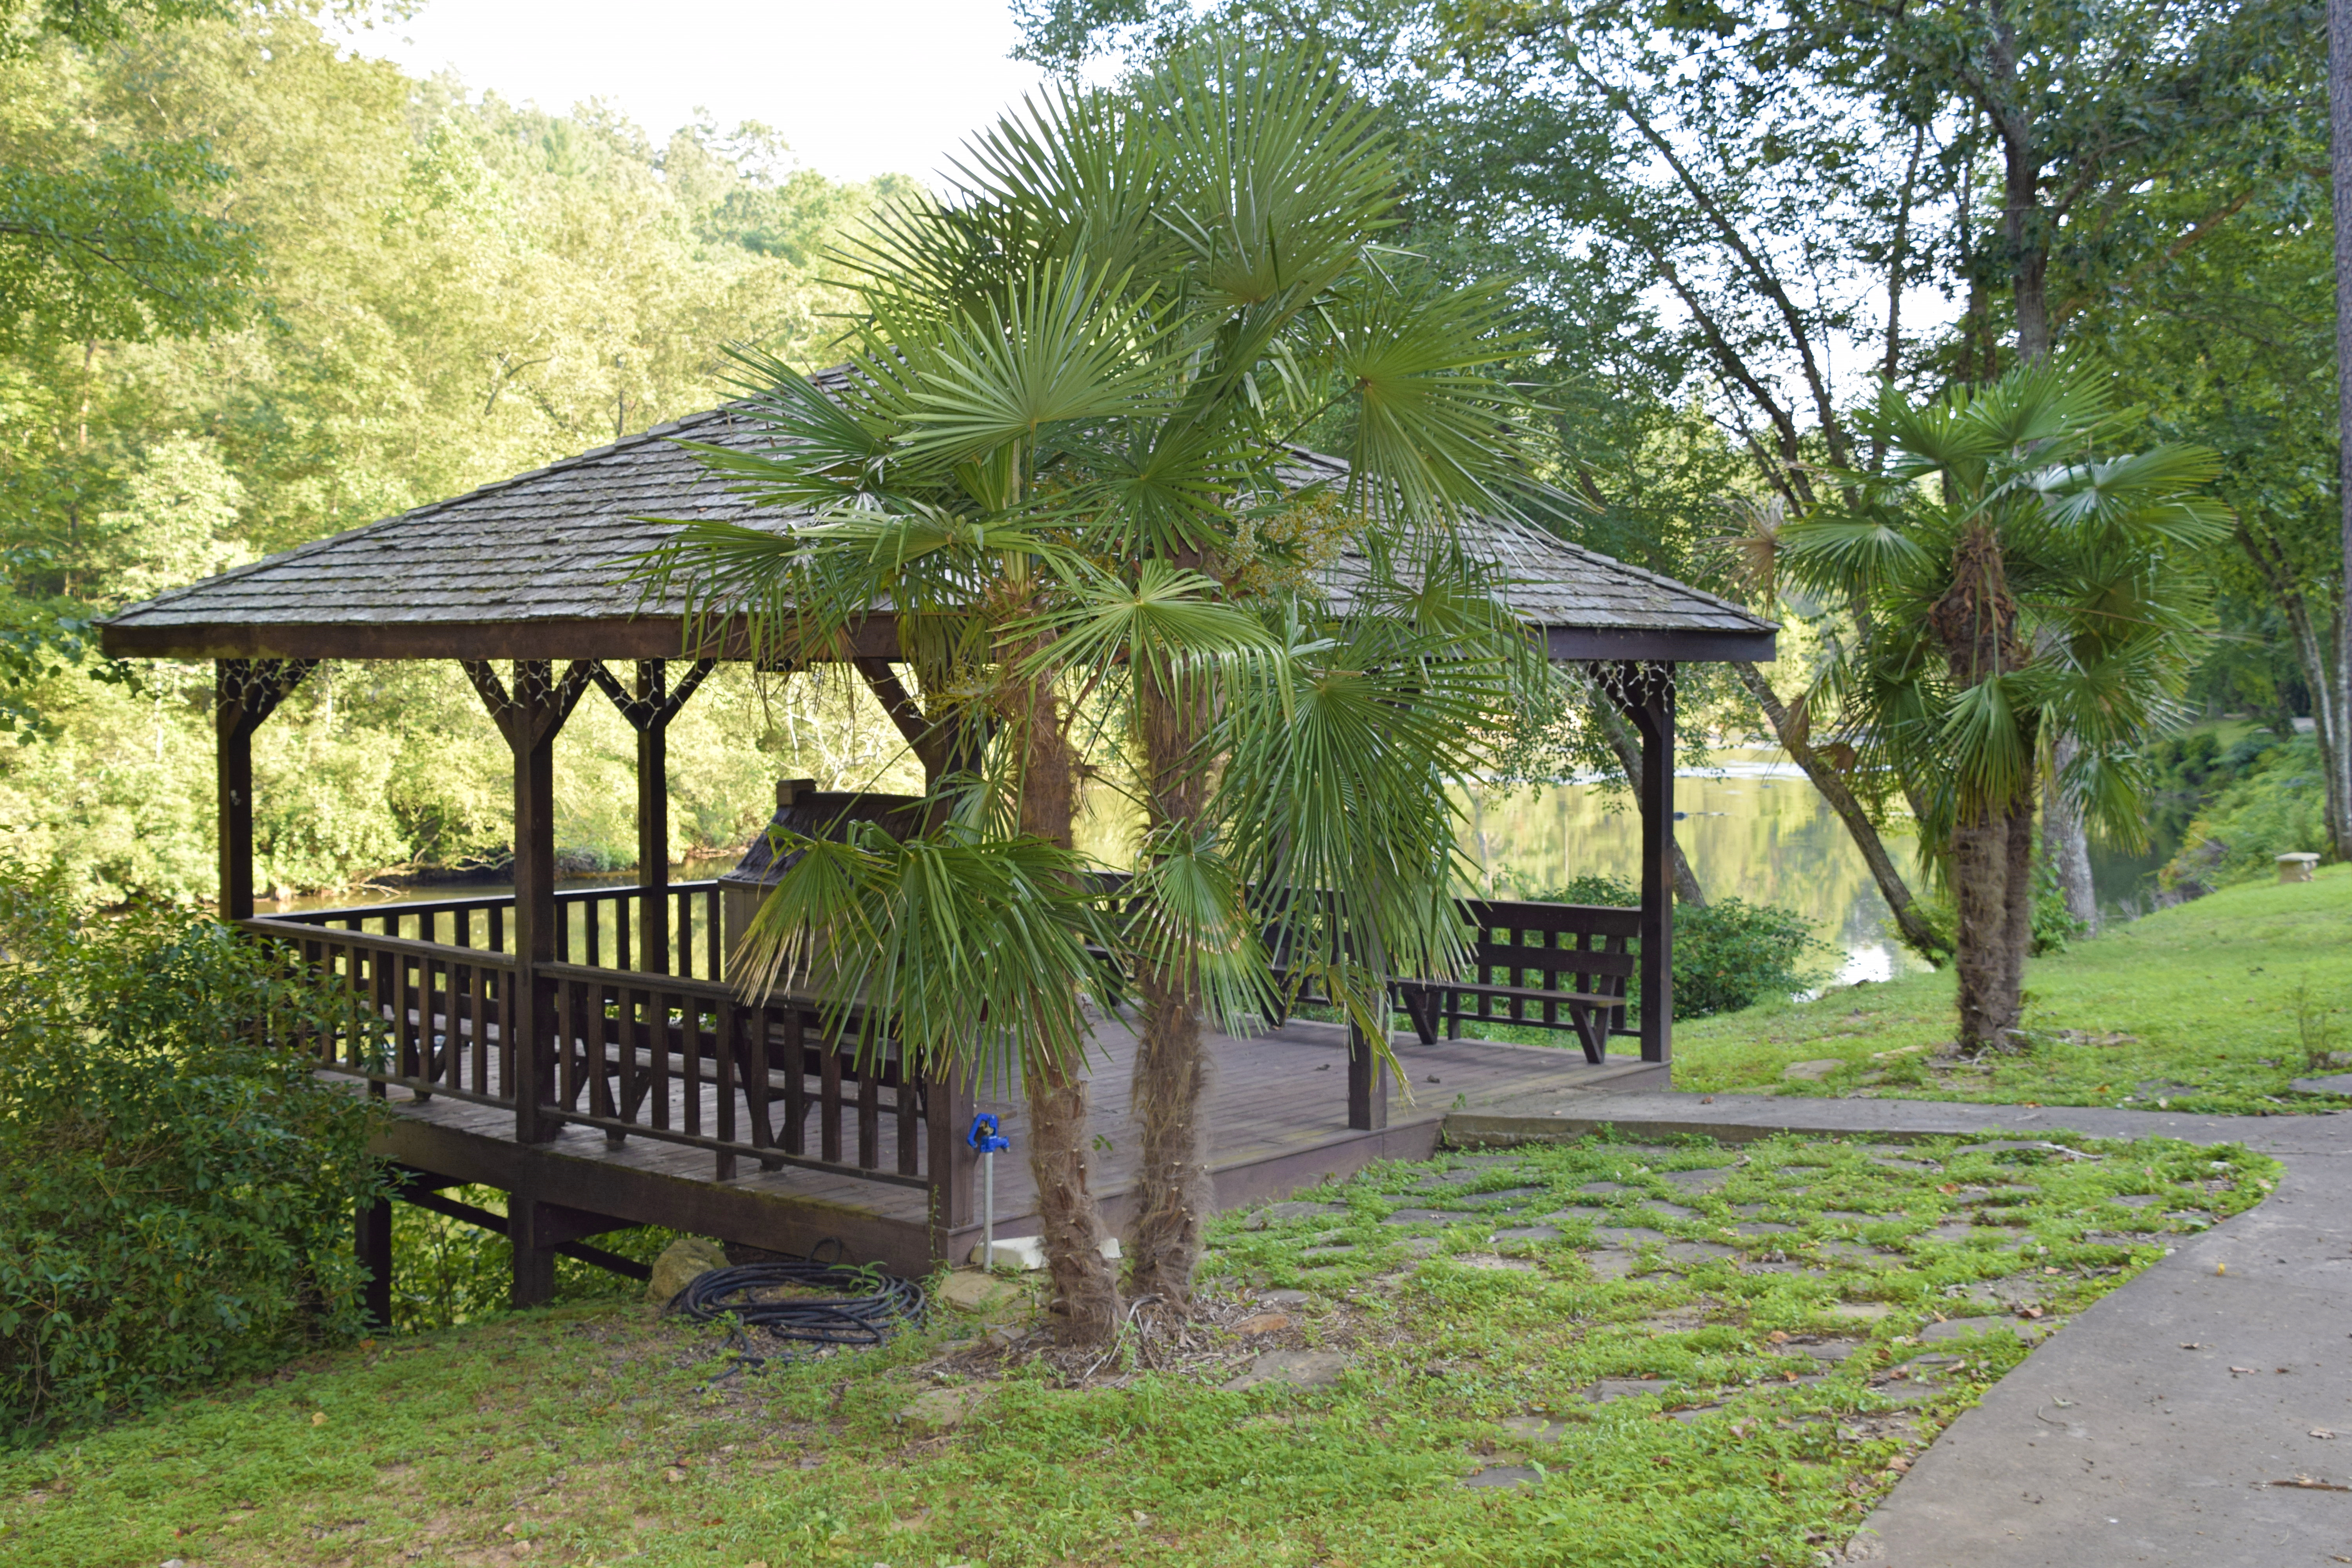 Gazebos on the River at River Park